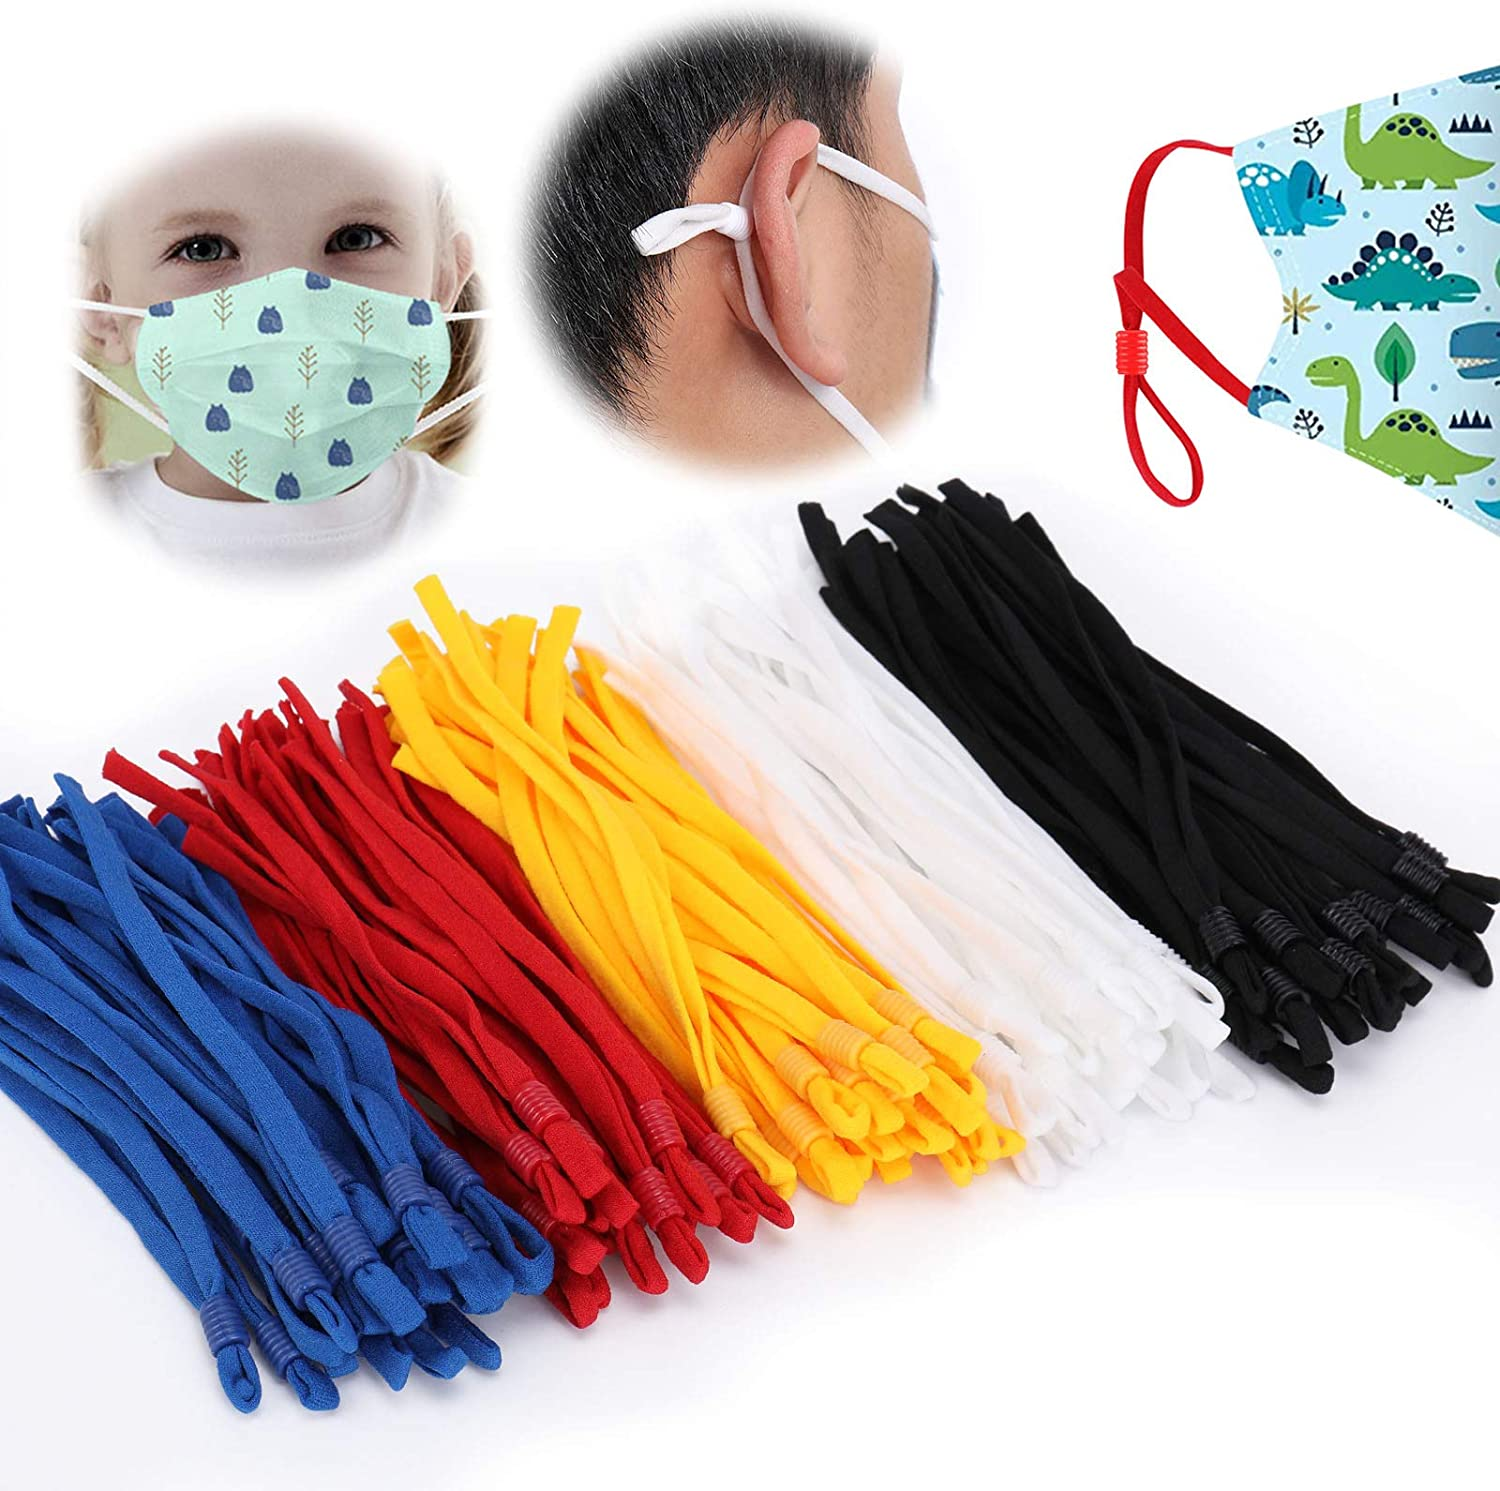 TOOVREN 100 Pieces Sewing Elastic Cord with Adjustable Buckle Stretchy Face Cover Earloop Elastic String//Elastic Band for Mask DIY Making-Black